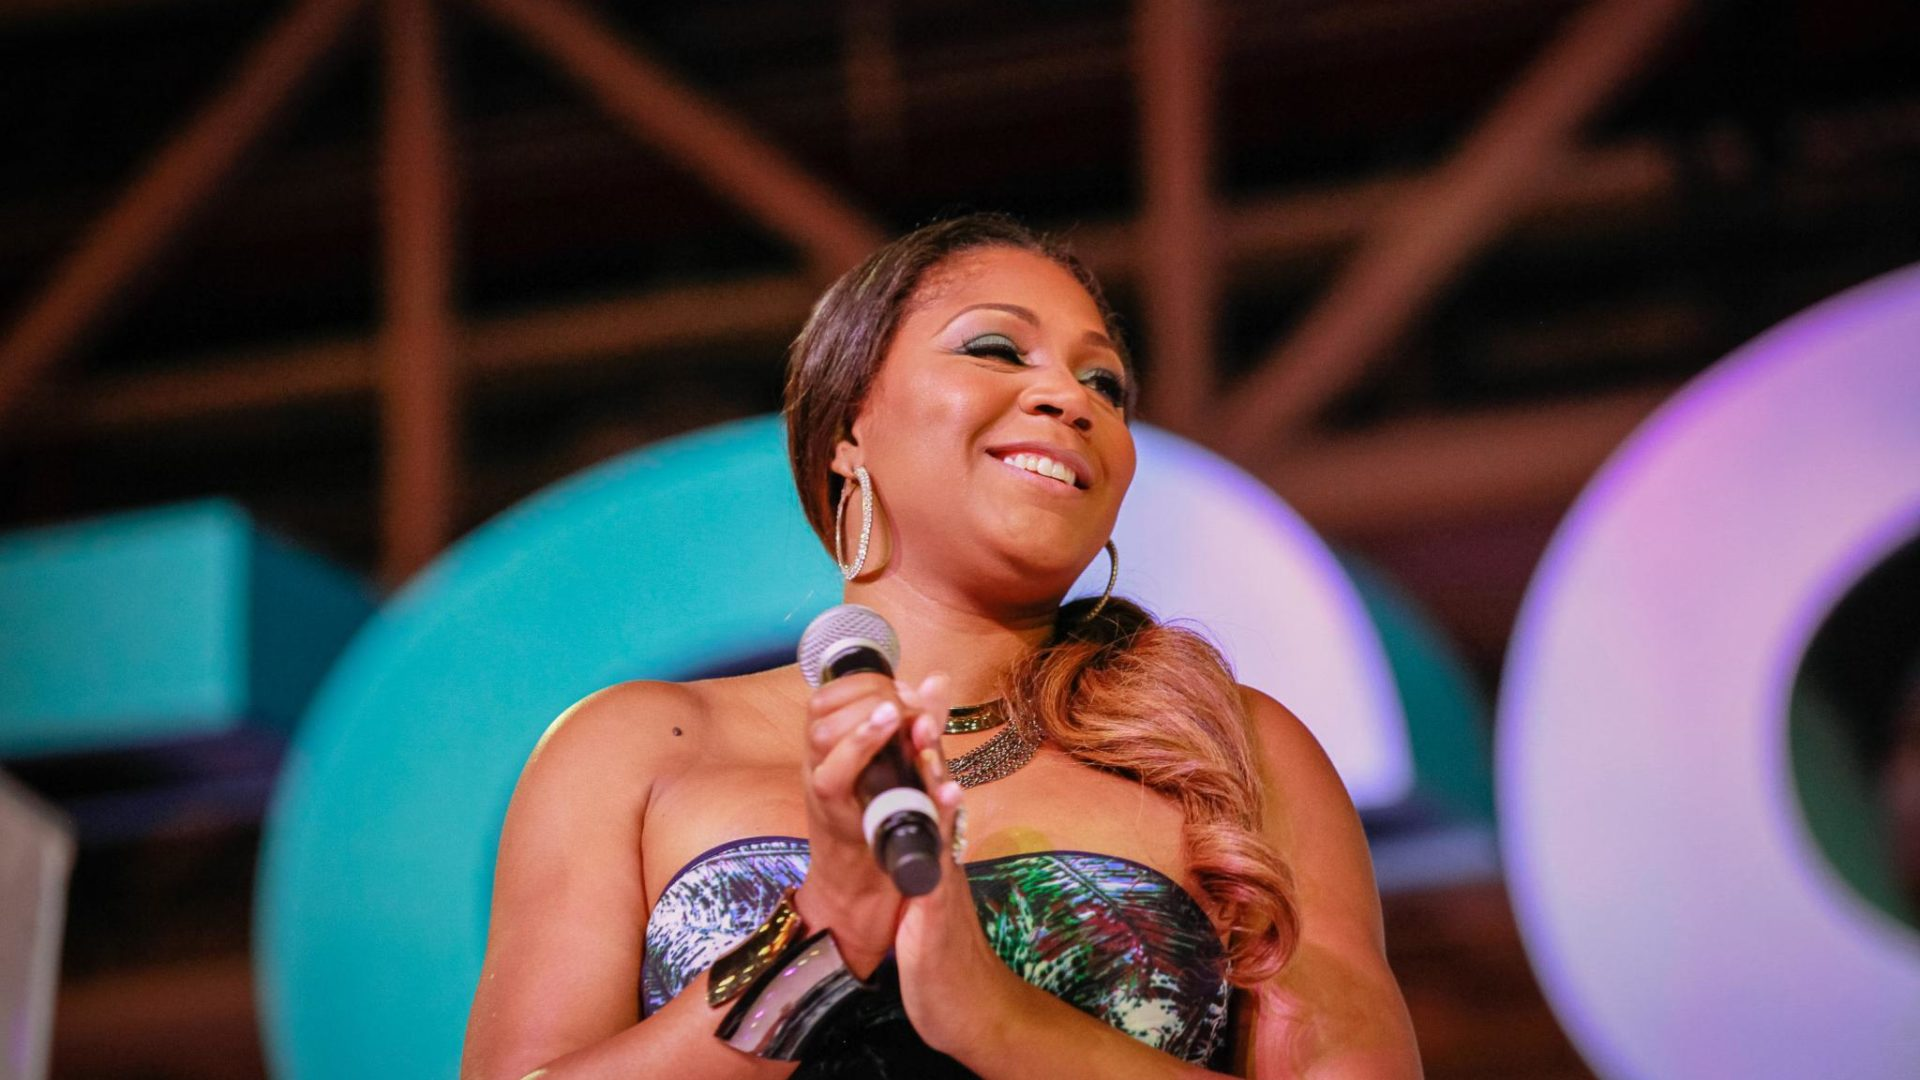 Trina Braxton Talks Finding Love After The Death Of Ex-Husband Gabe Solis